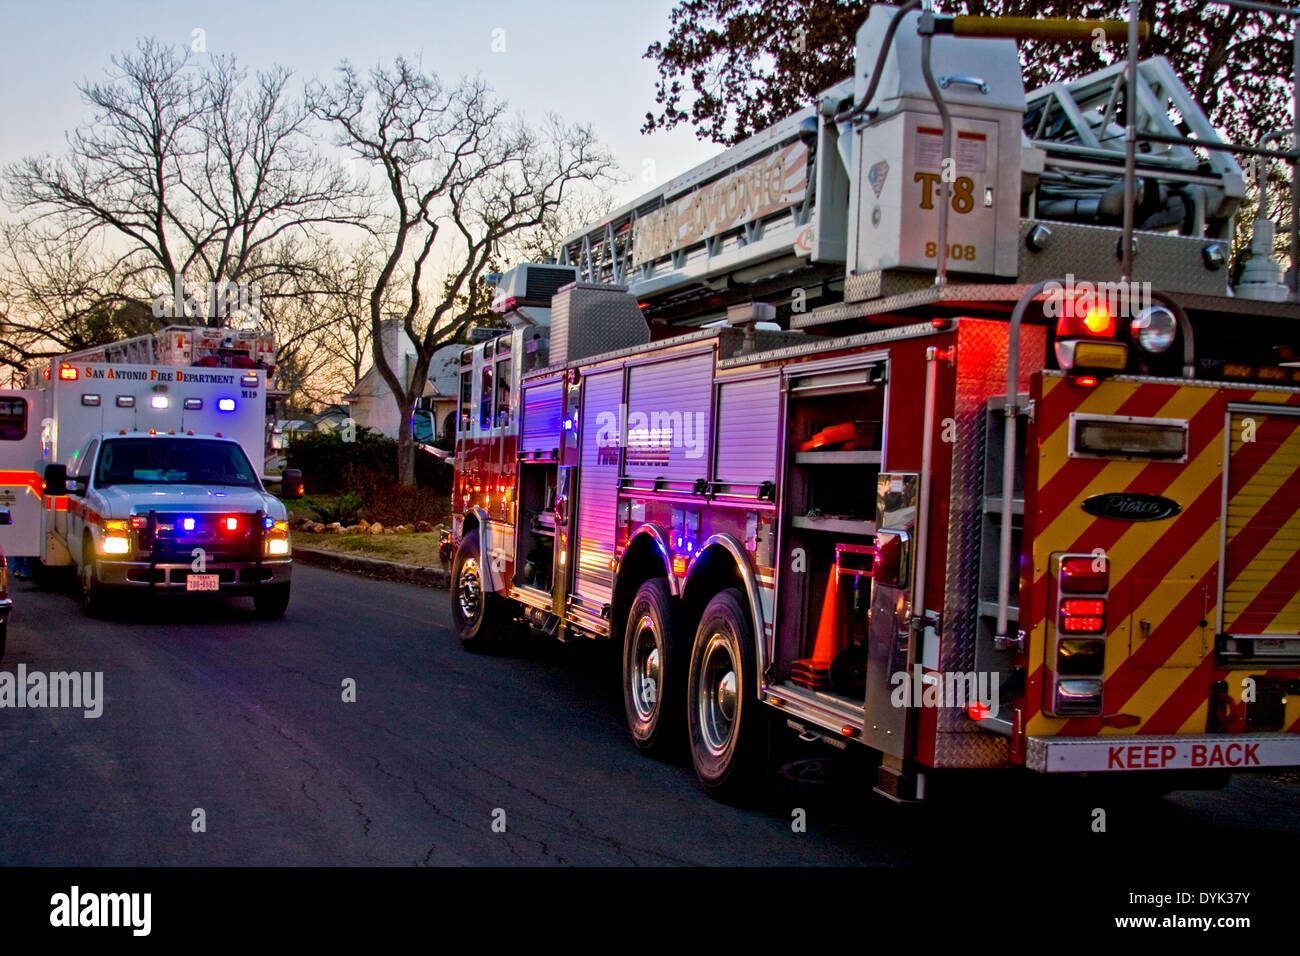 Ambulance and Fire Truck at emergency call. - Stock Image